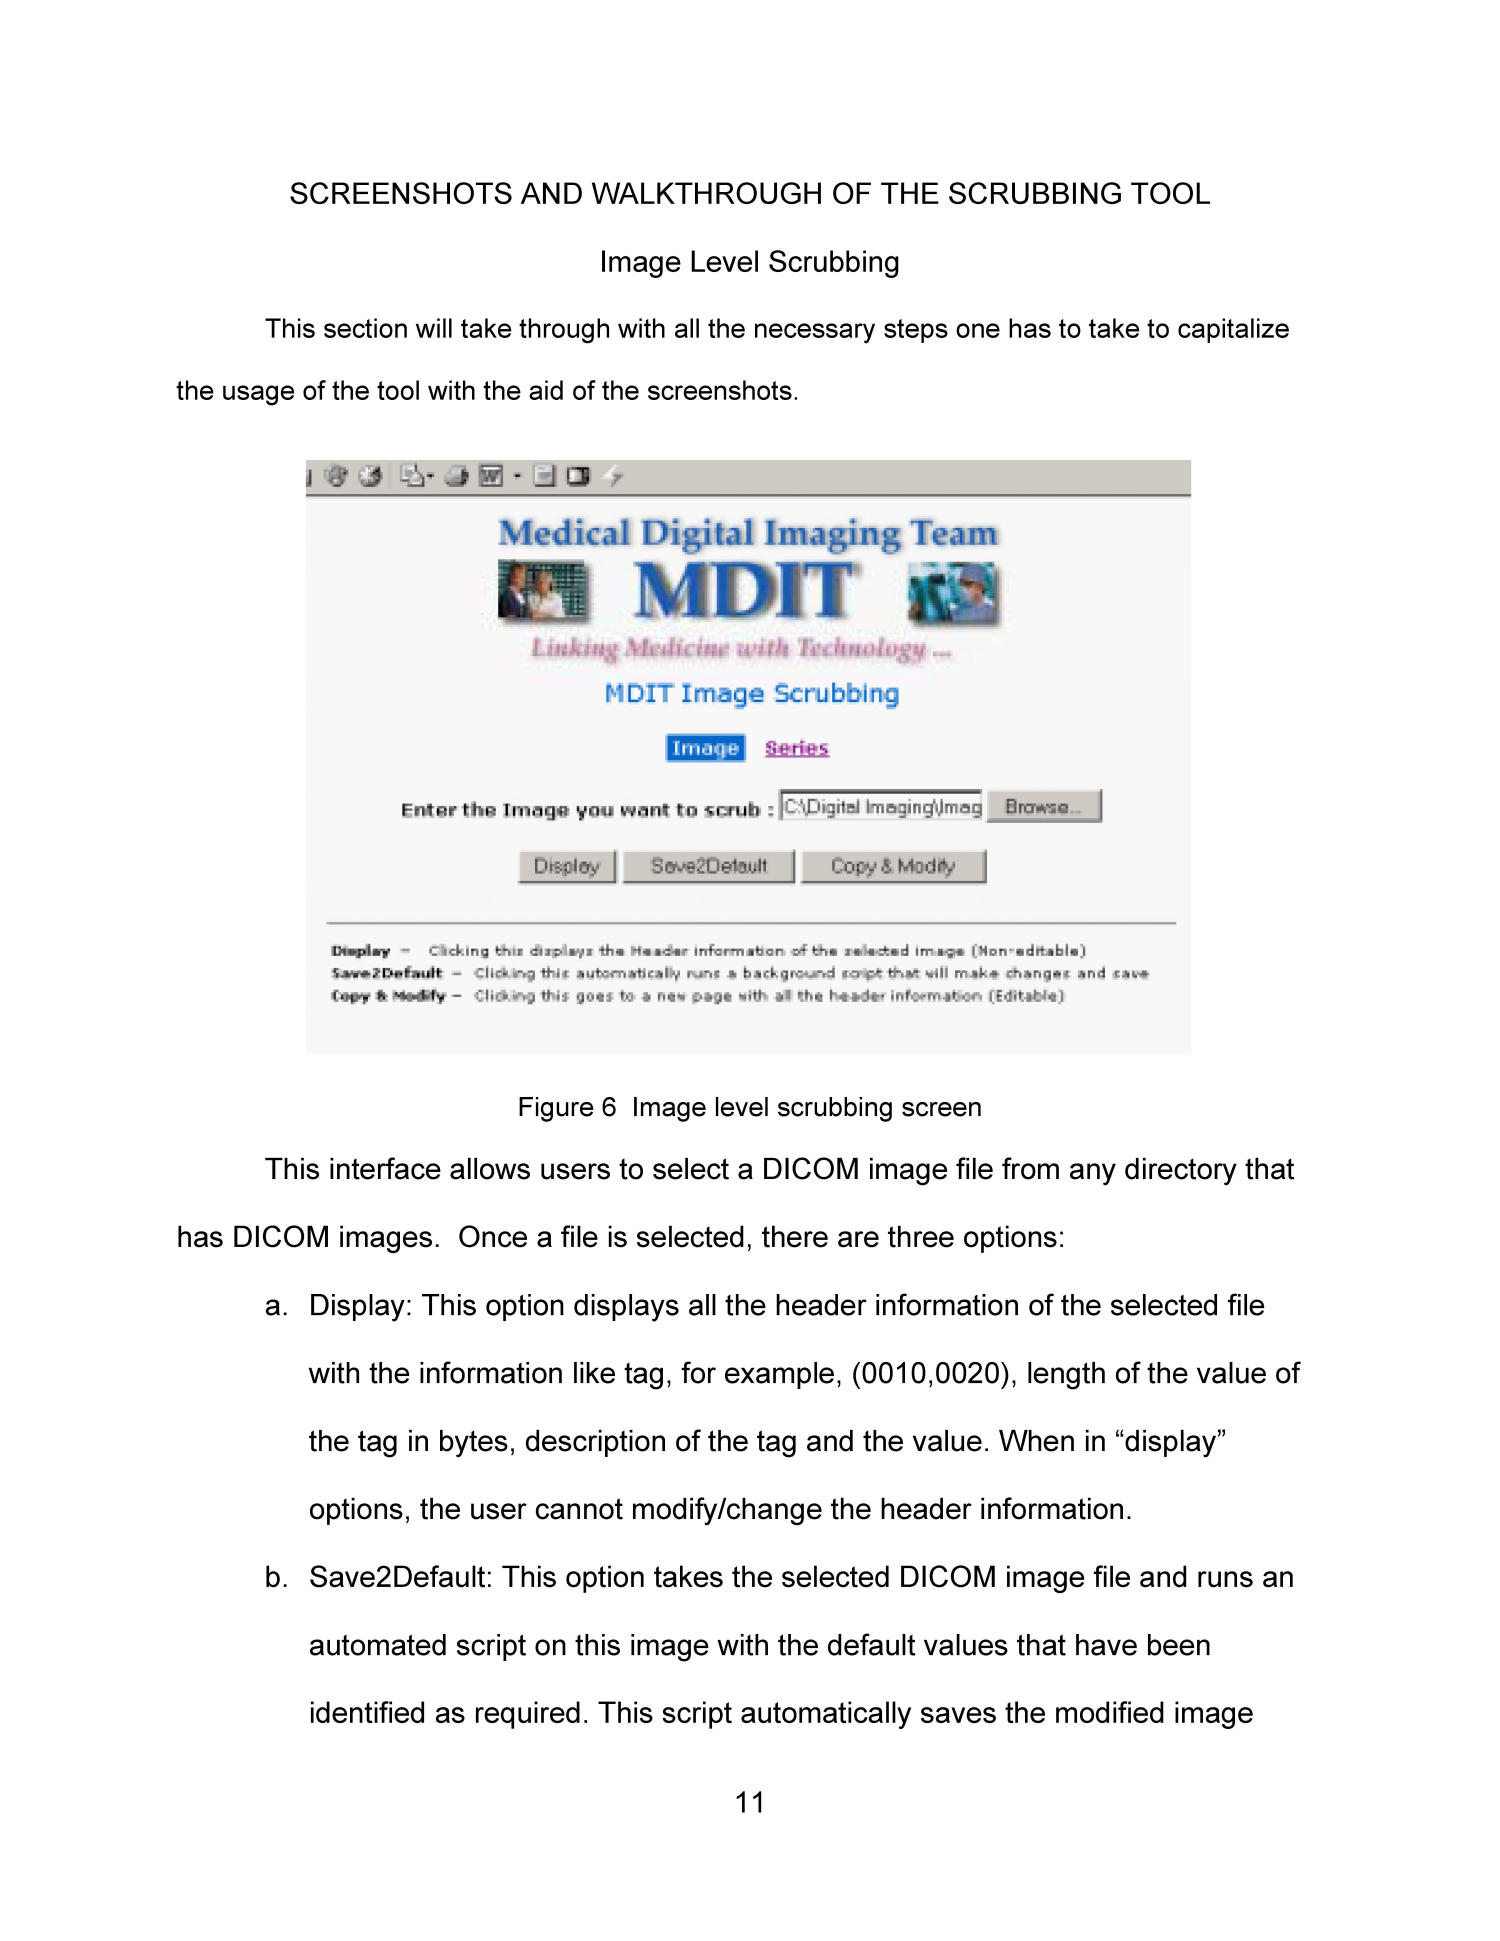 DICOM Image Scrubbing Software Library/Utility - Page 11